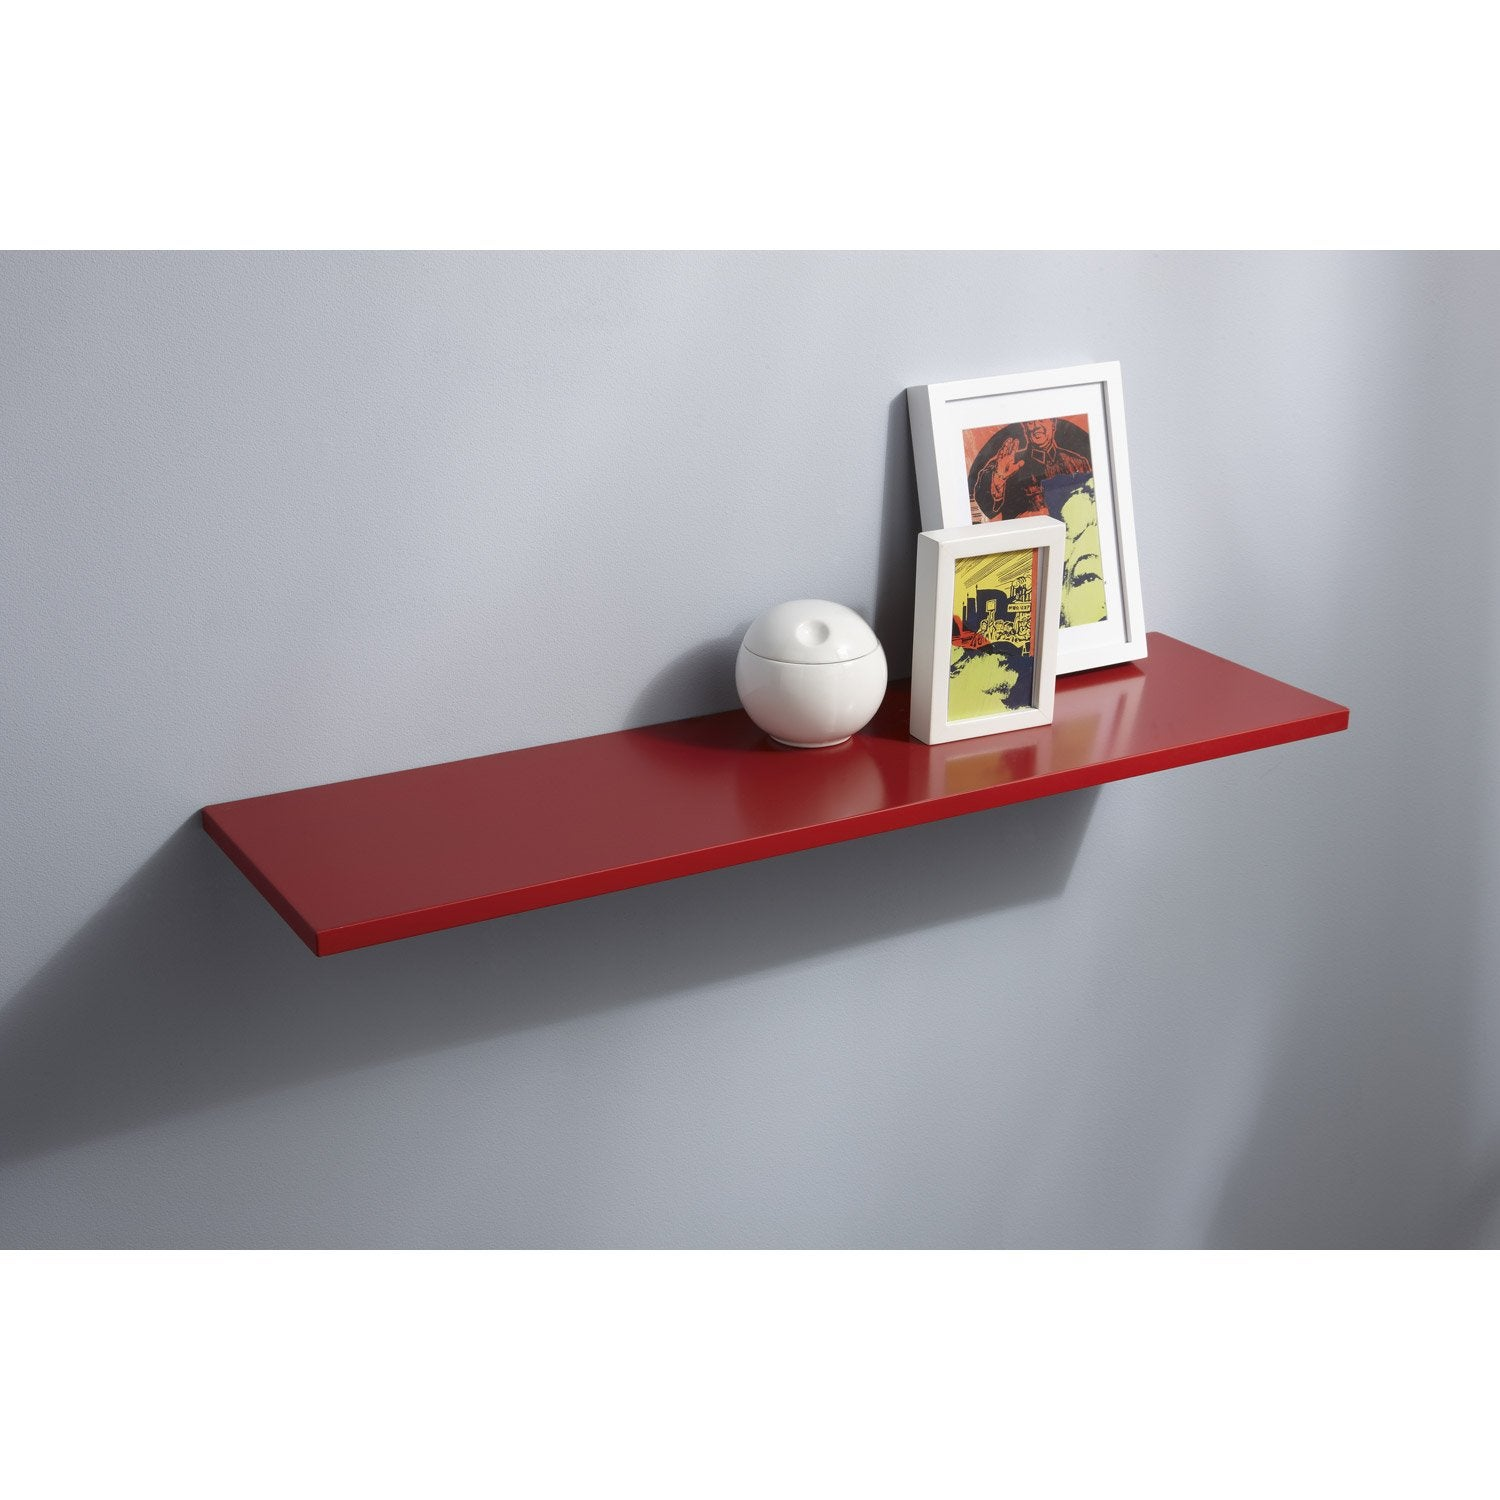 Tablette d corative punch spaceo en mdf rouge rouge n 3 60x15 cm p 18 mm - Tablette murale rouge ...